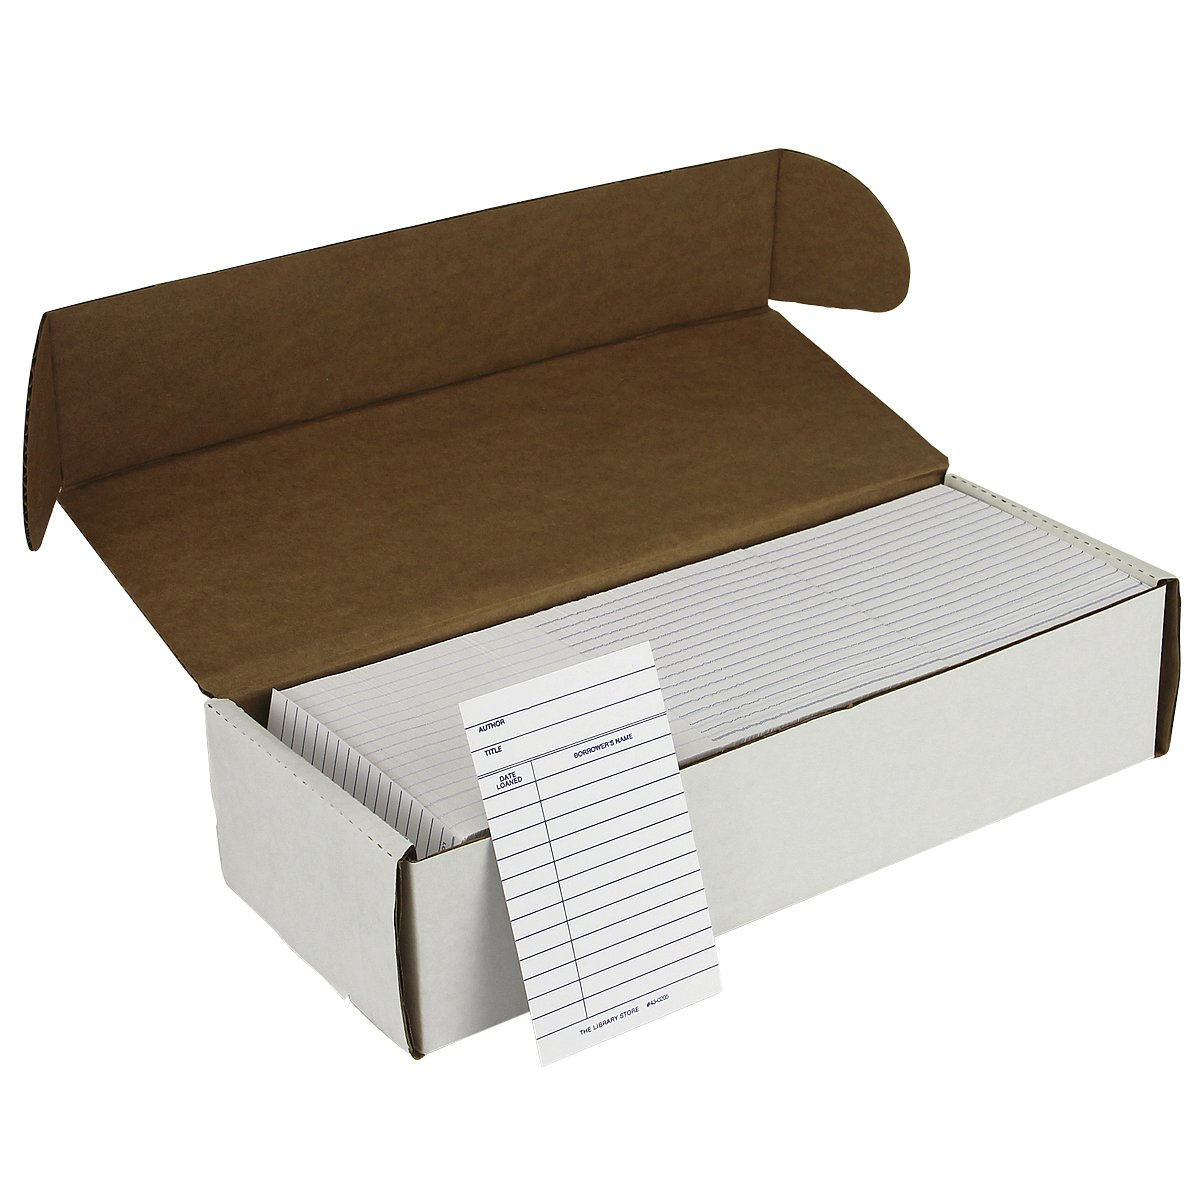 Book Cards White 2 Column with Date Loaned - Medium Weight 1000/pkg